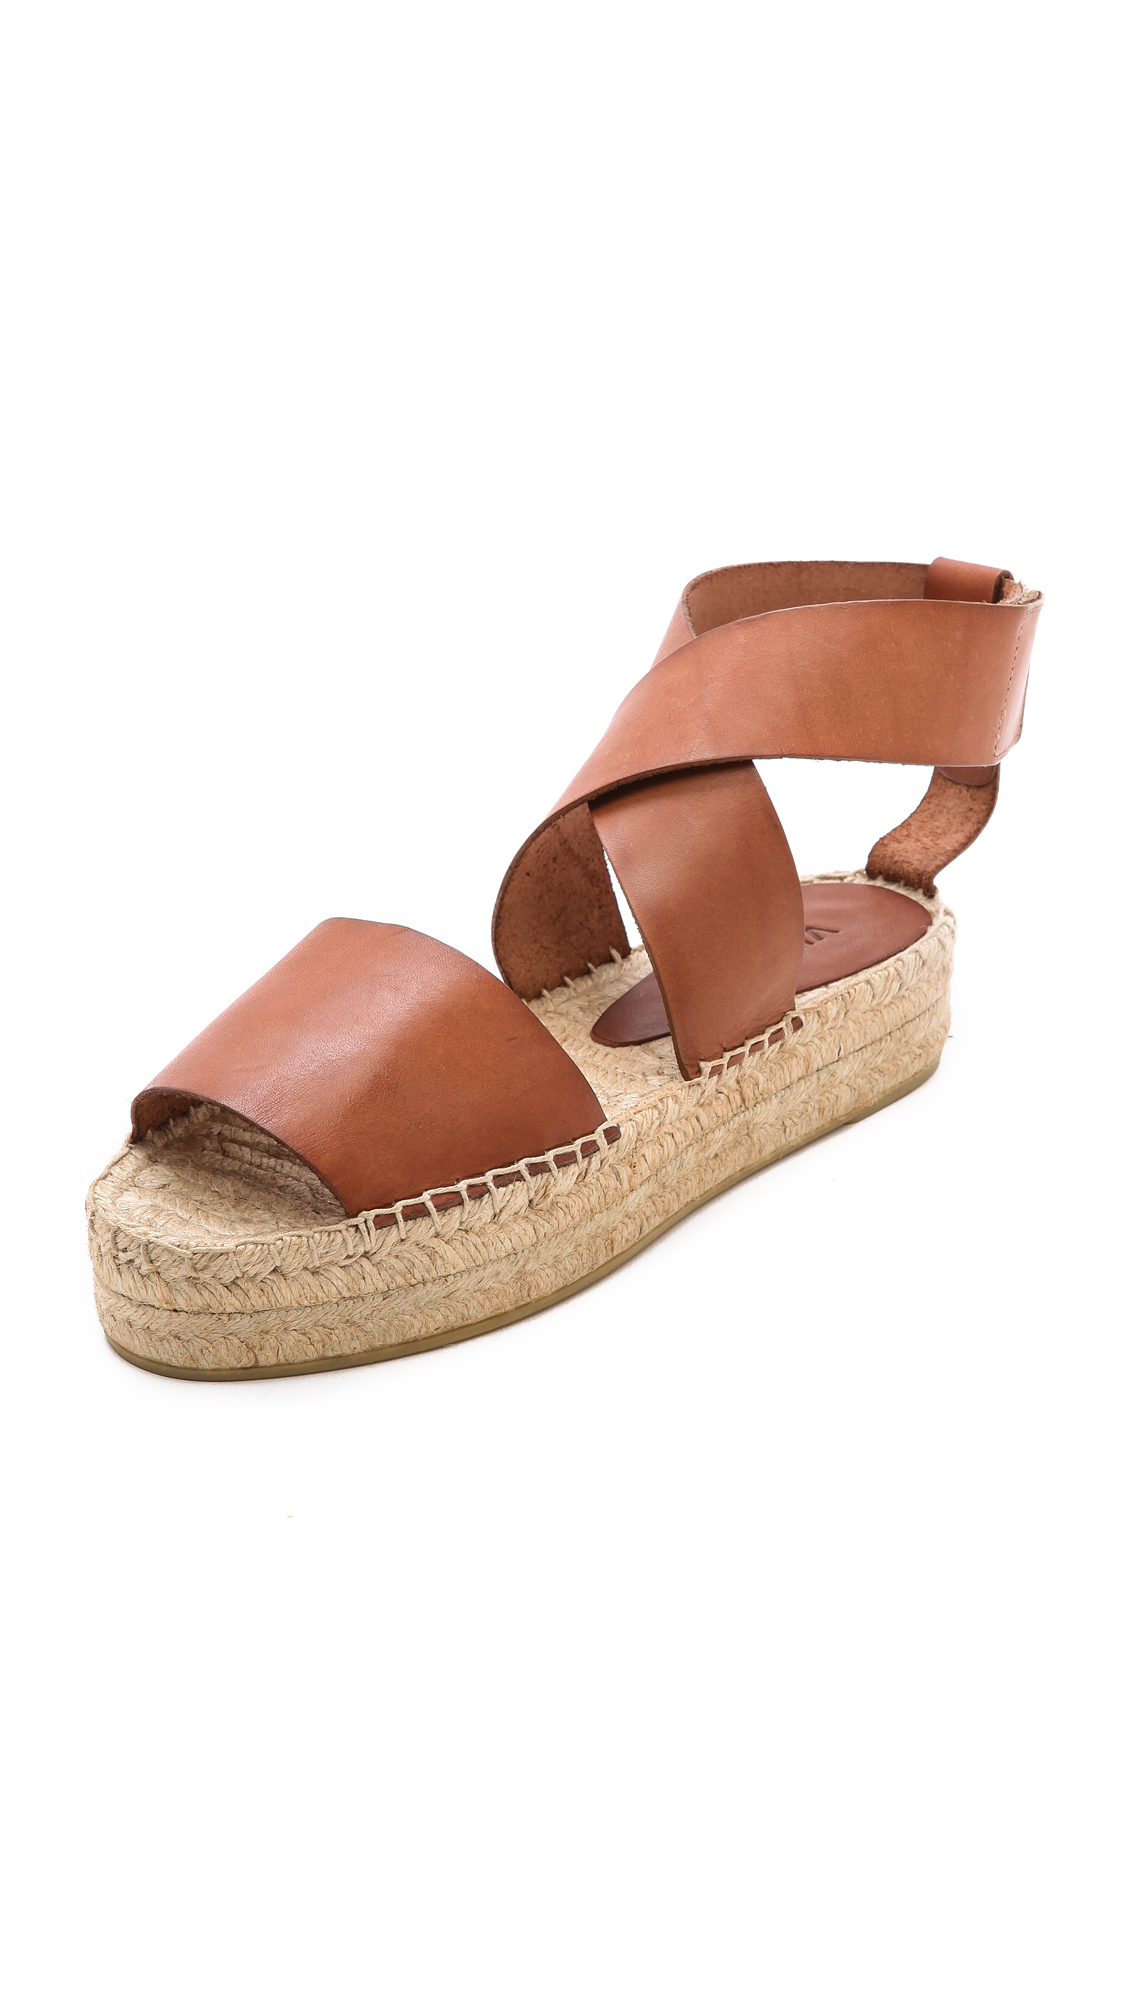 Lyst Vince Elise Espadrille Flat Sandals Luggage In Brown